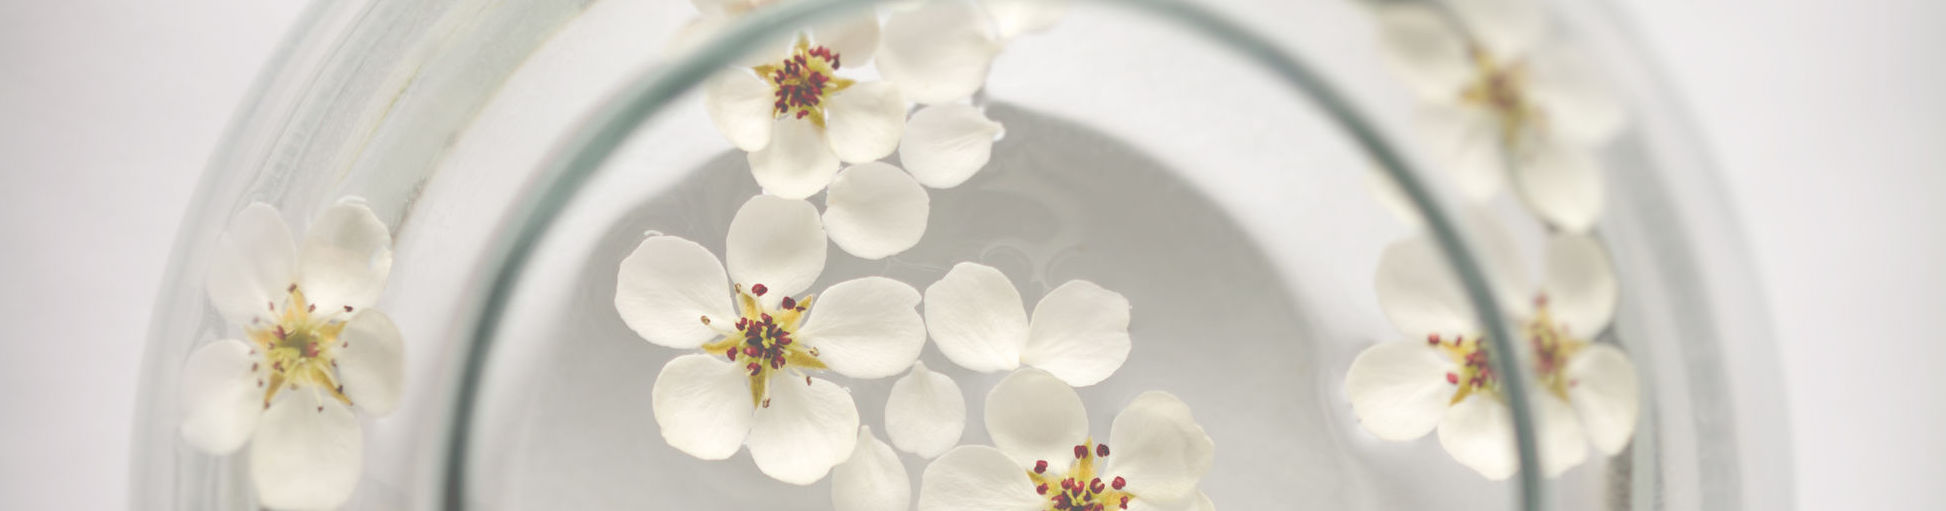 White blossoms floating with ease on water